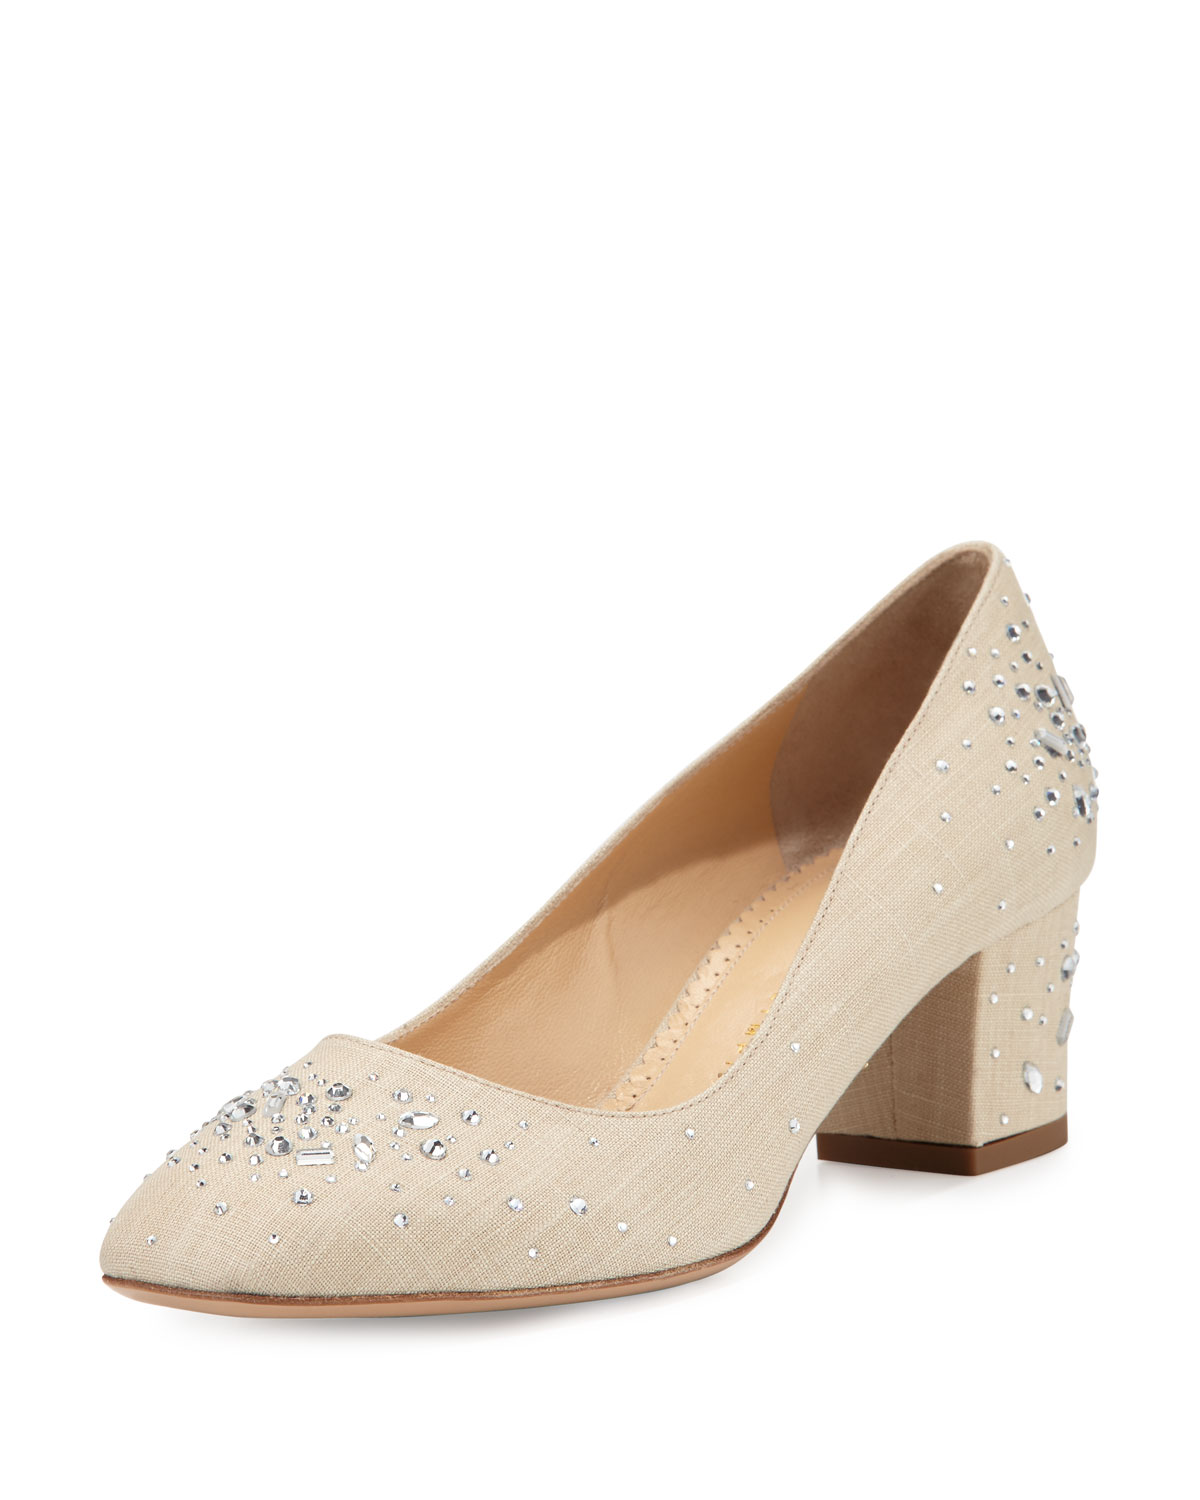 Low-Heel Jeweled Linen Pump, Natural, Size: 35.0B/5.0B - Charlotte Olympia